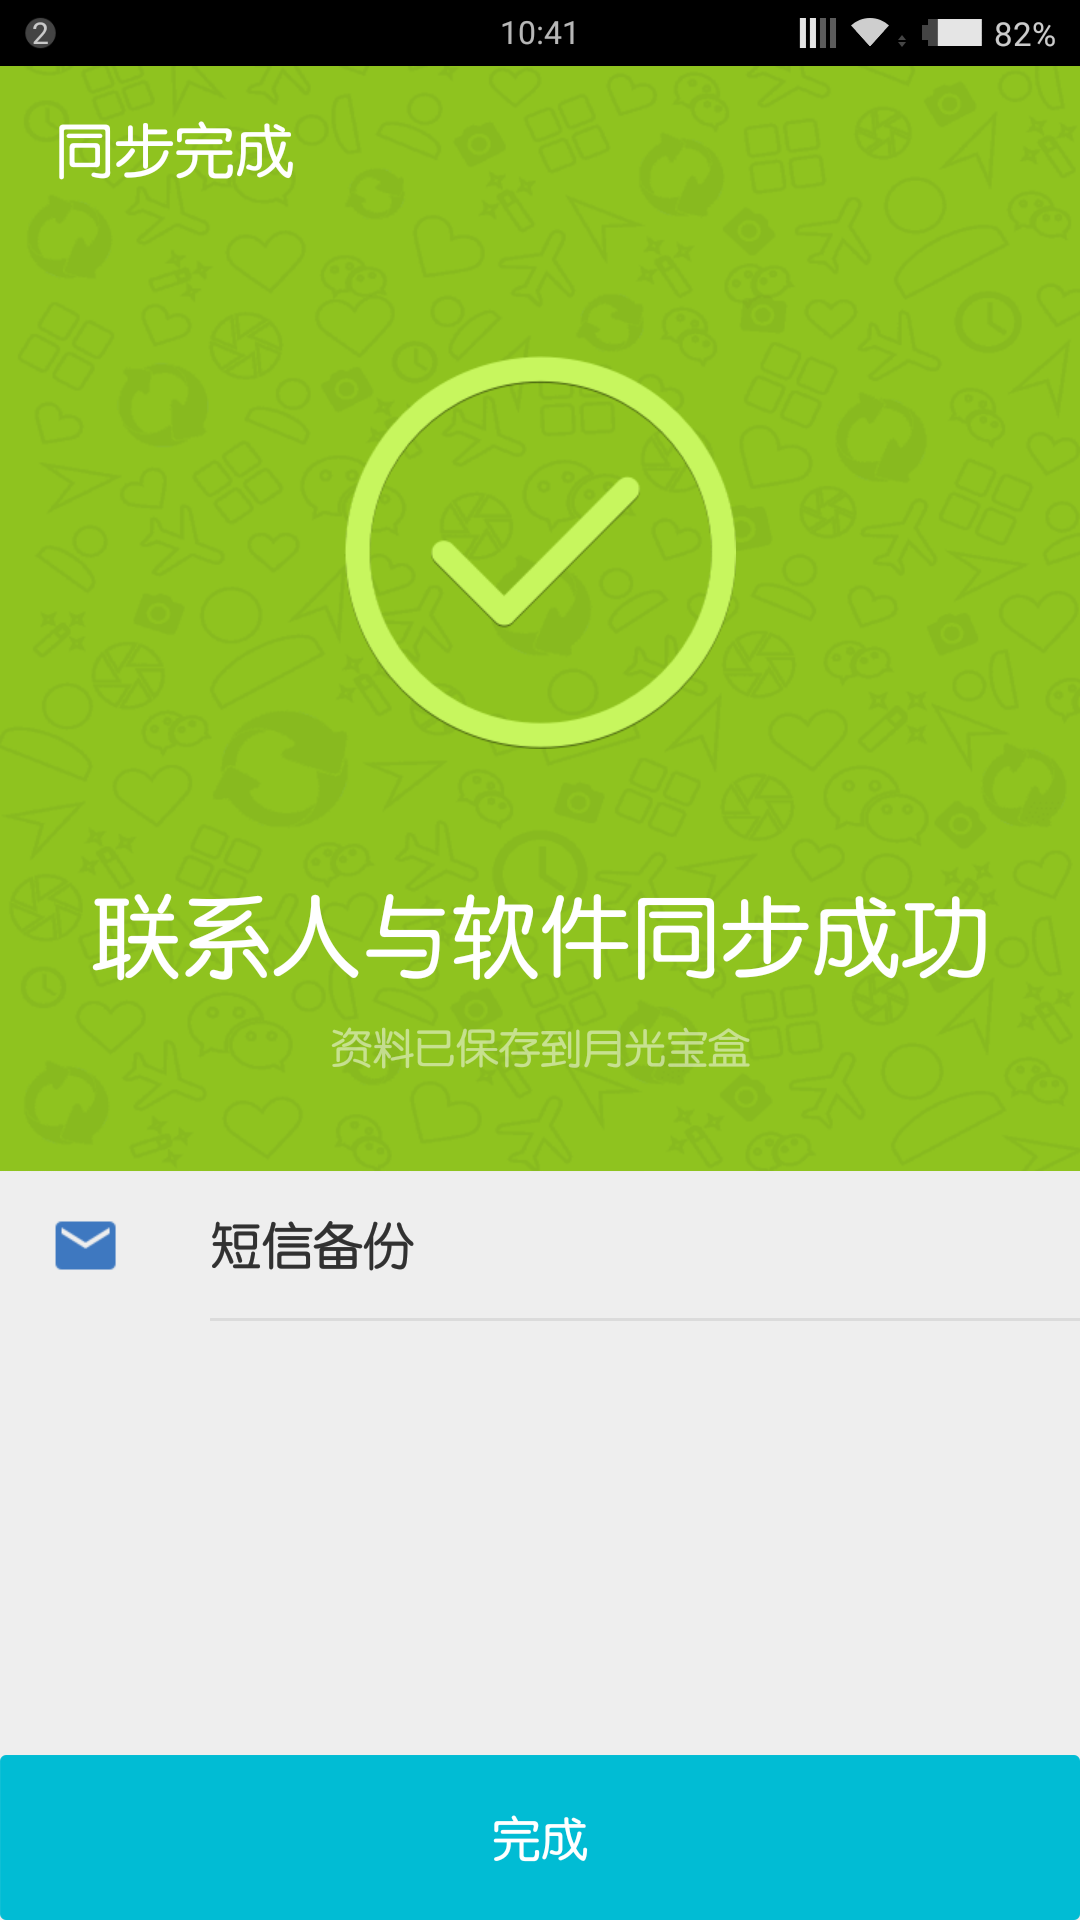 Screenshot_2015-08-15-10-41-54.png